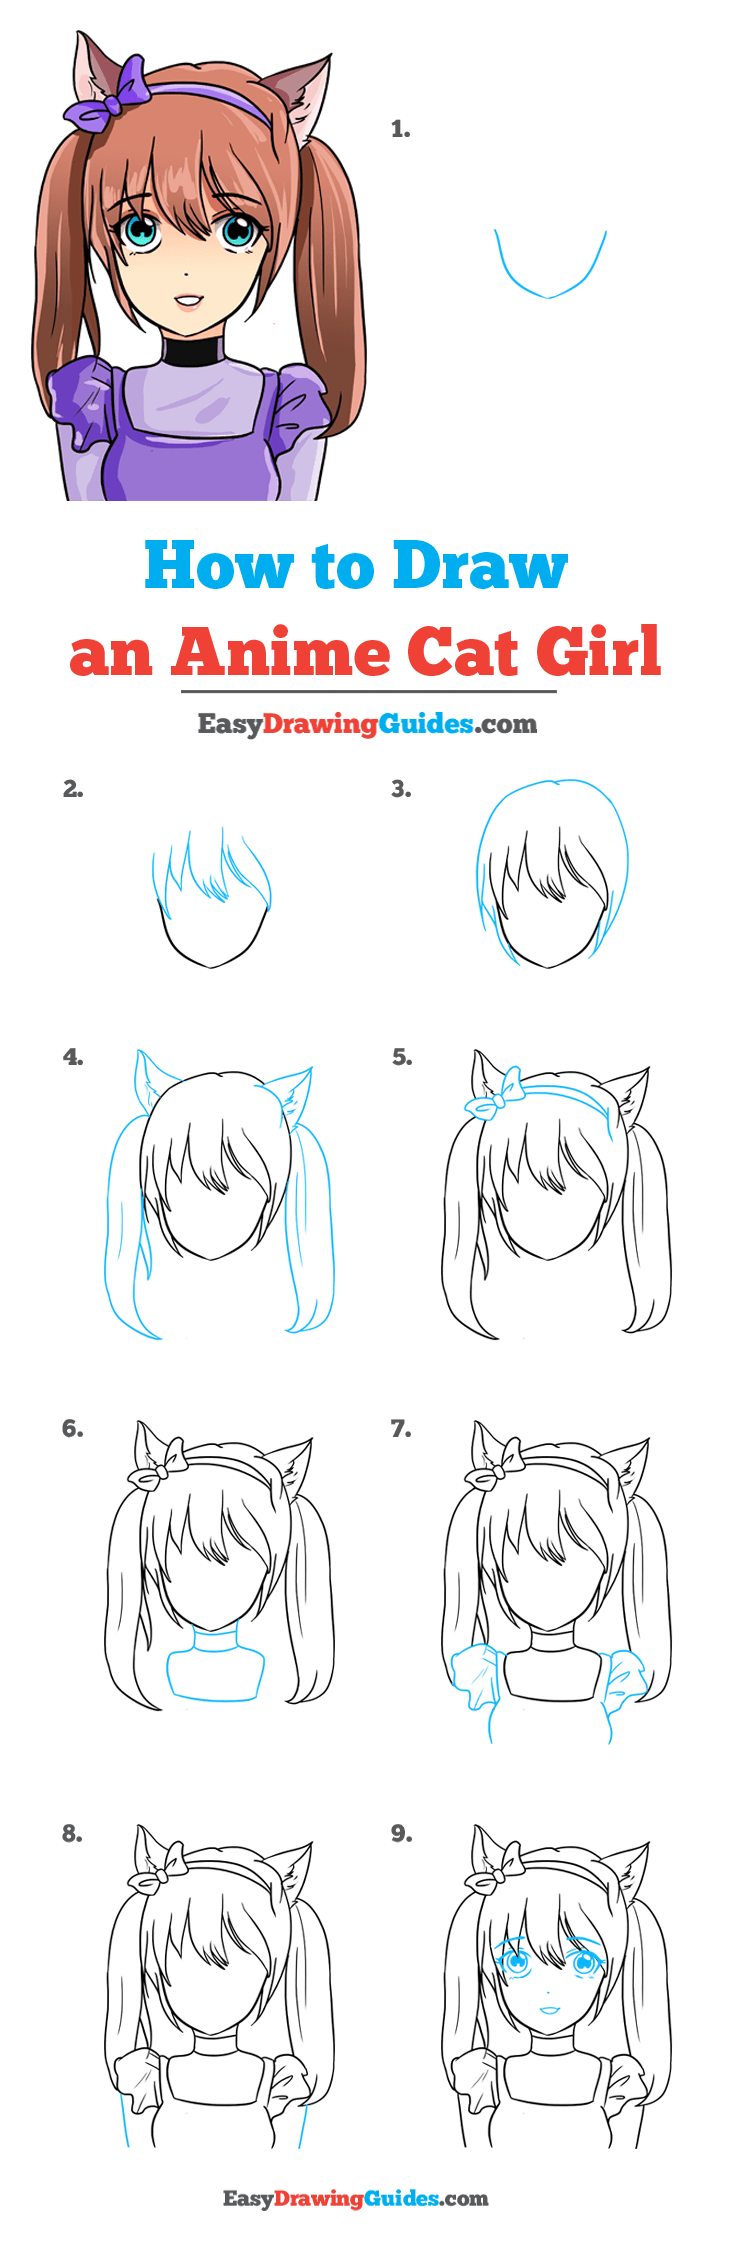 How to Draw Anime Cat Girl